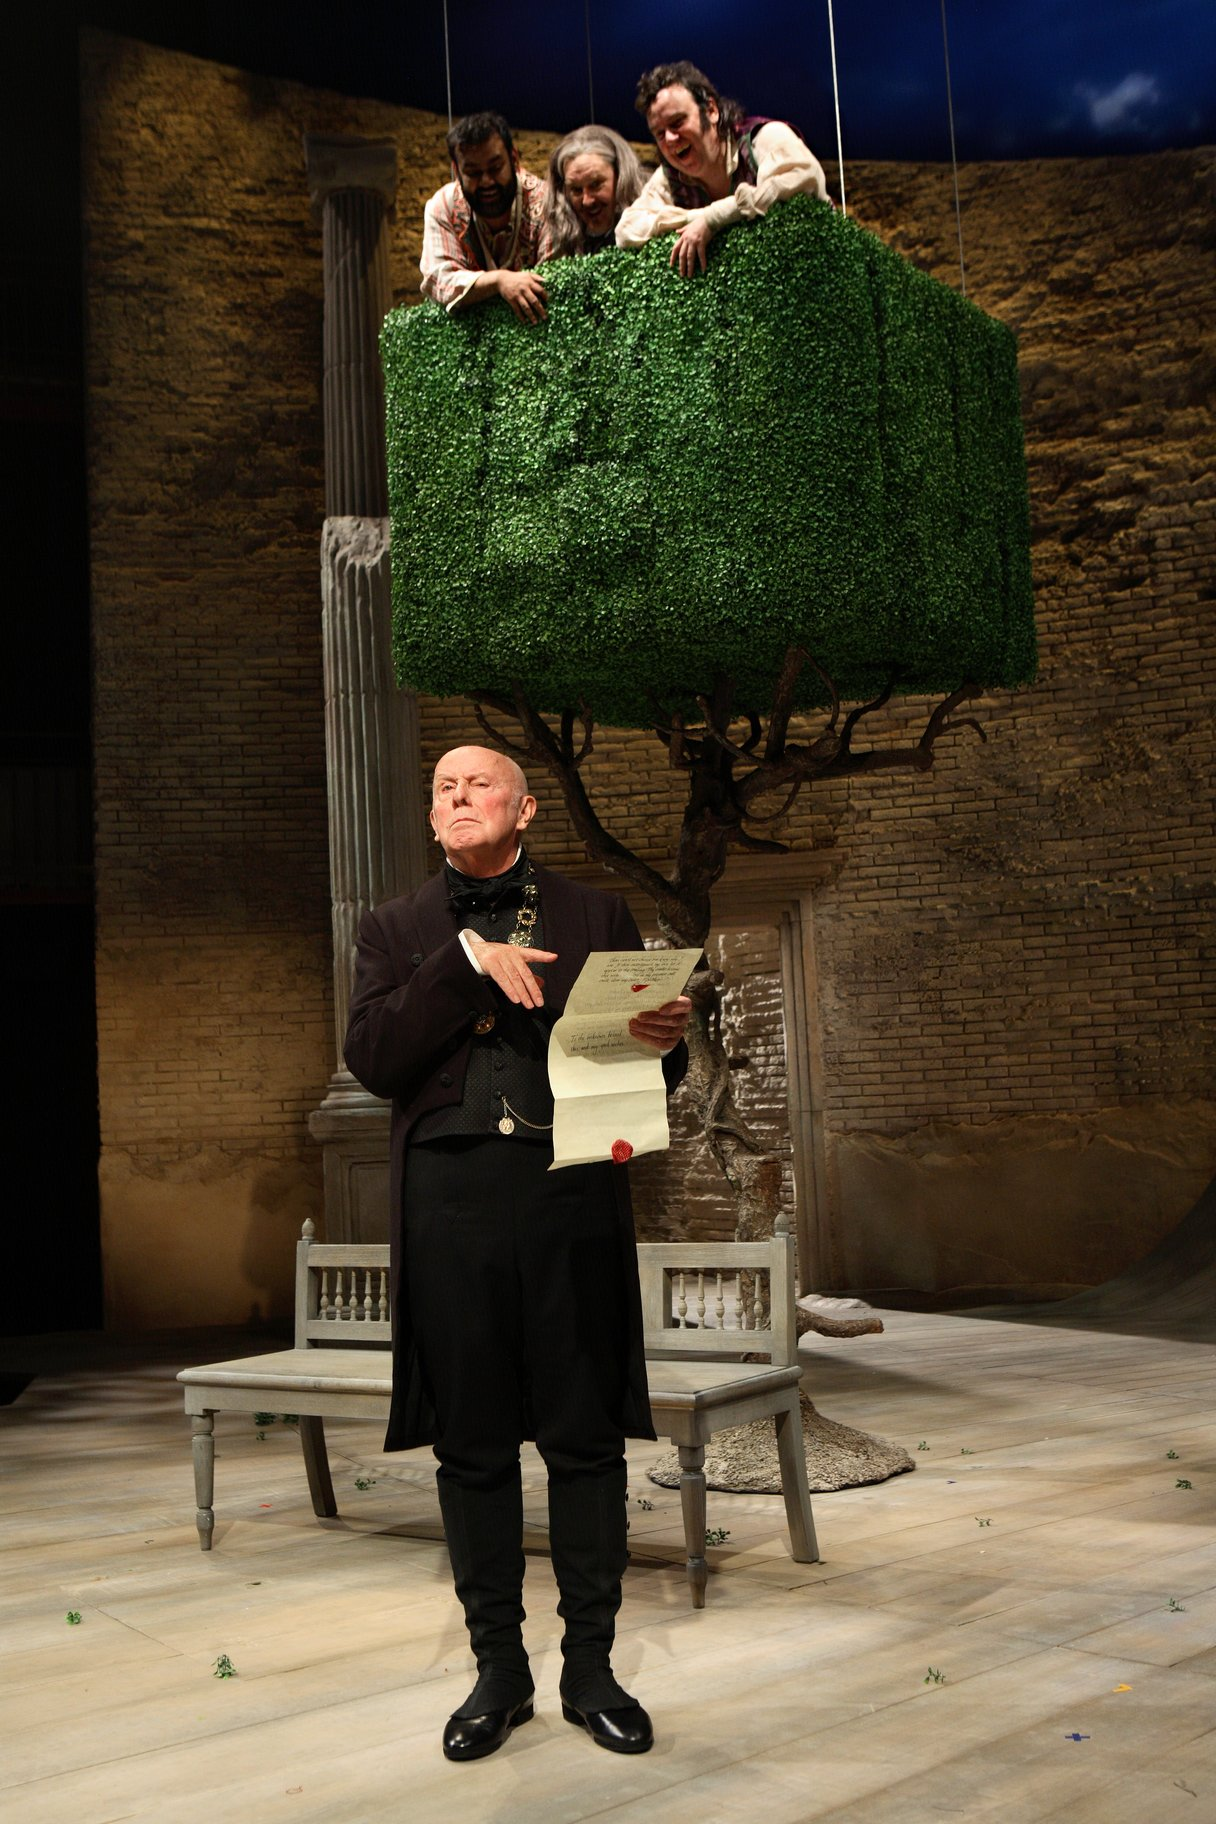 Malvolio stands and reads a letter in front of a large tree, wearing all black. He is watched by Sir Toby, Sir Andrew and Fabian who are all on top of the tress, looking down at him in the 2009 production of Twelfth Night.